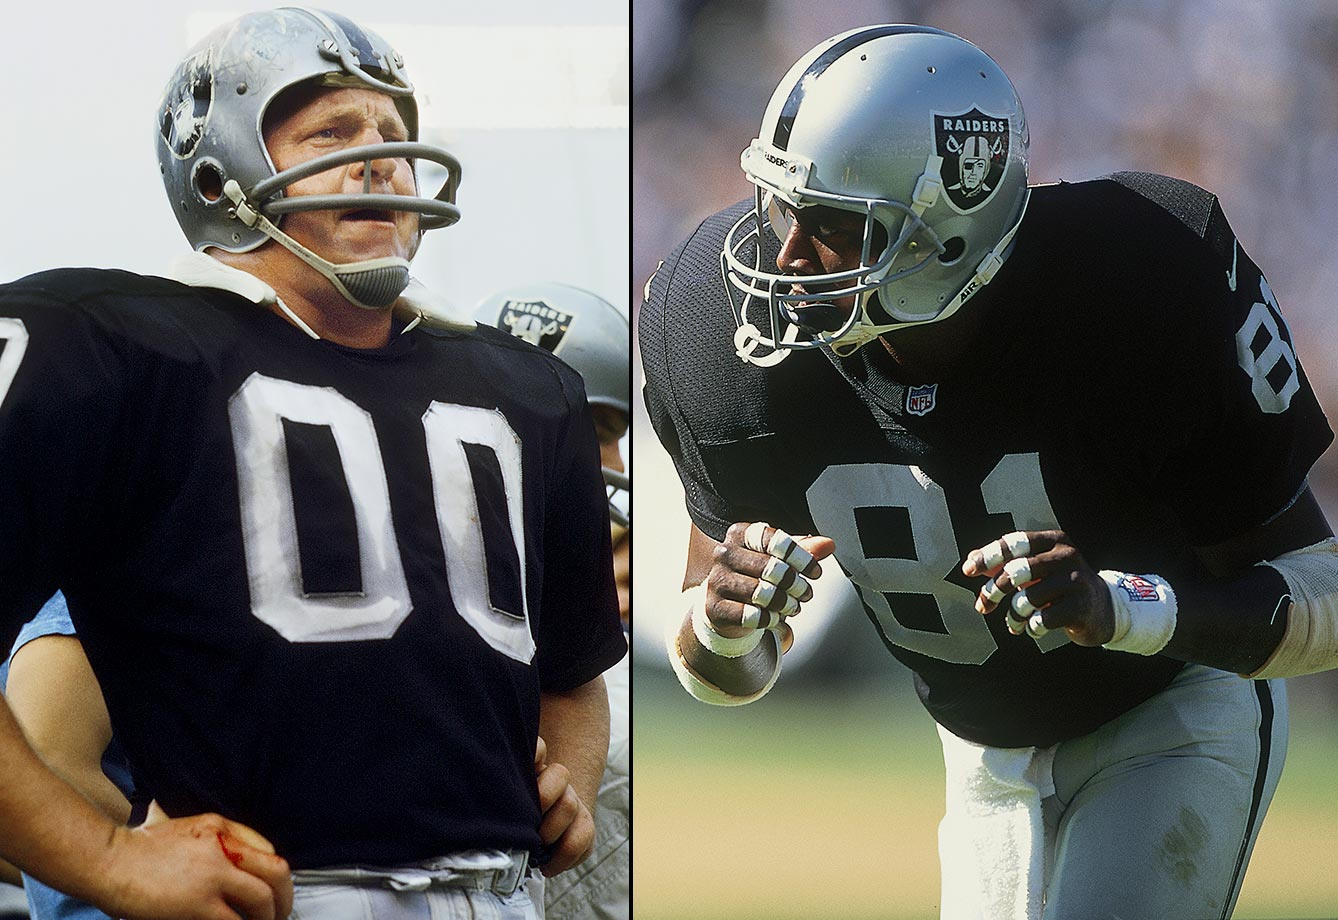 The Raiders started out in Oakland in 1960, as a member of the American Football League and stayed there until the end of the 1981 season. They moved to Los Angeles for the next 13 seasons before moving back to Oakland. They've won one Super Bowl in Oakland (1976) and one in Los Angeles (1983).